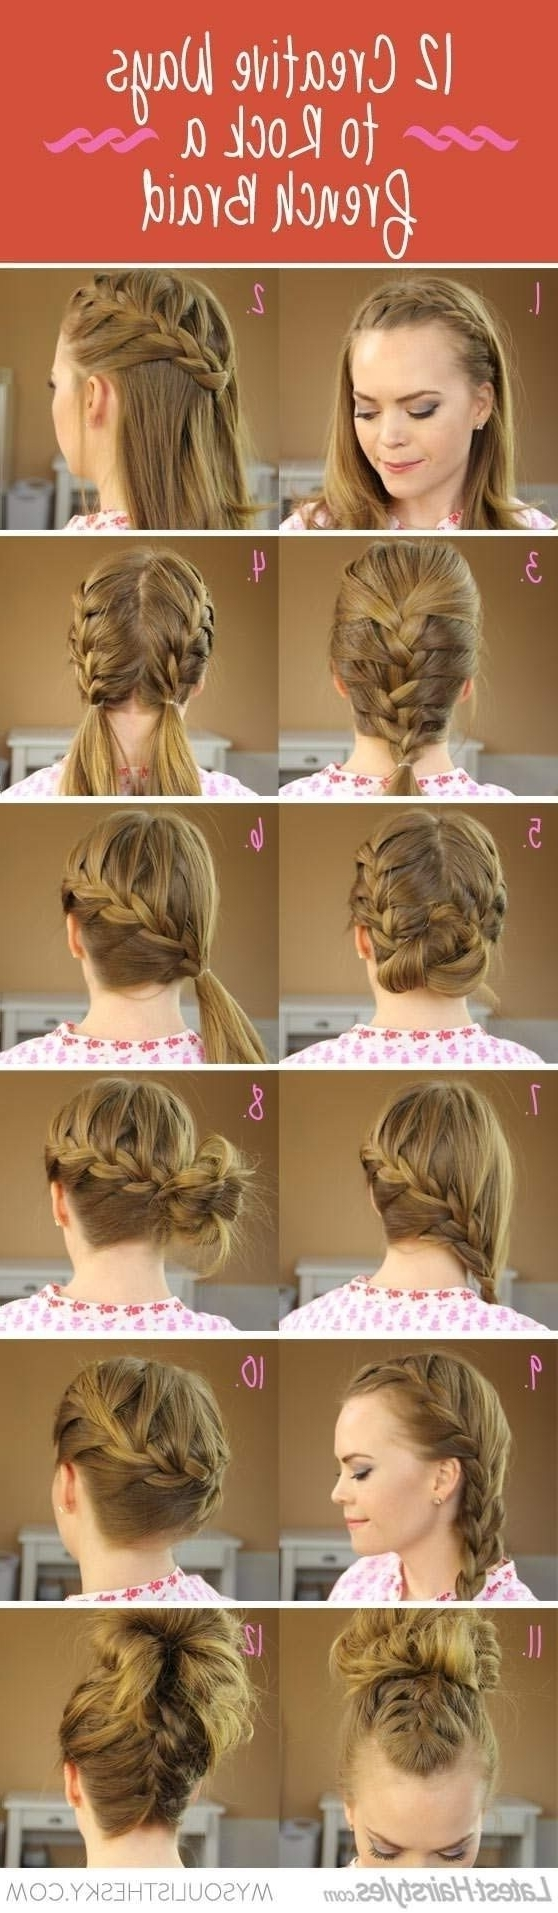 20 Cute And Easy Braided Hairstyle Tutorials With Latest Simple French Braids For Long Hair (View 2 of 15)